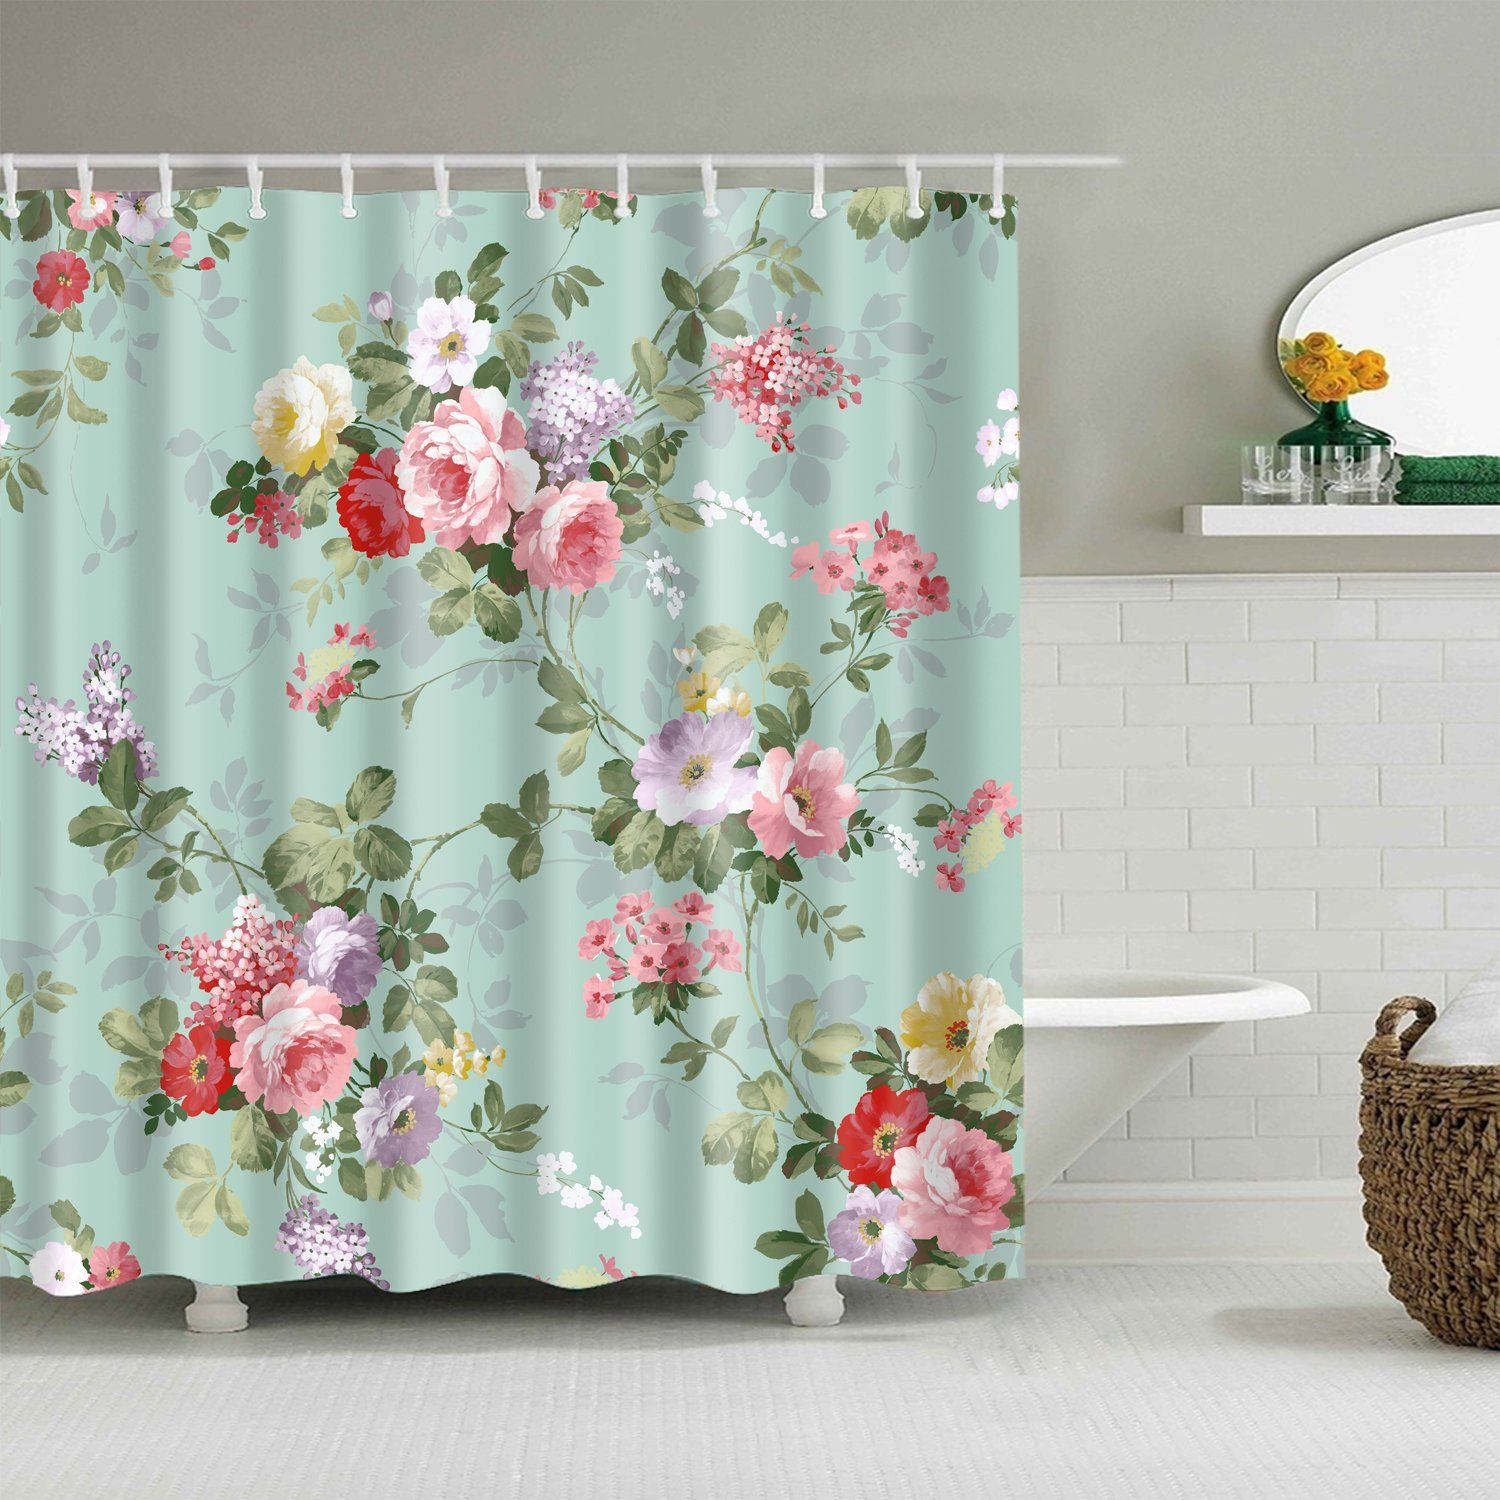 Teal Backdrop Pink Rose Flower Shower Curtain in 2020 ...